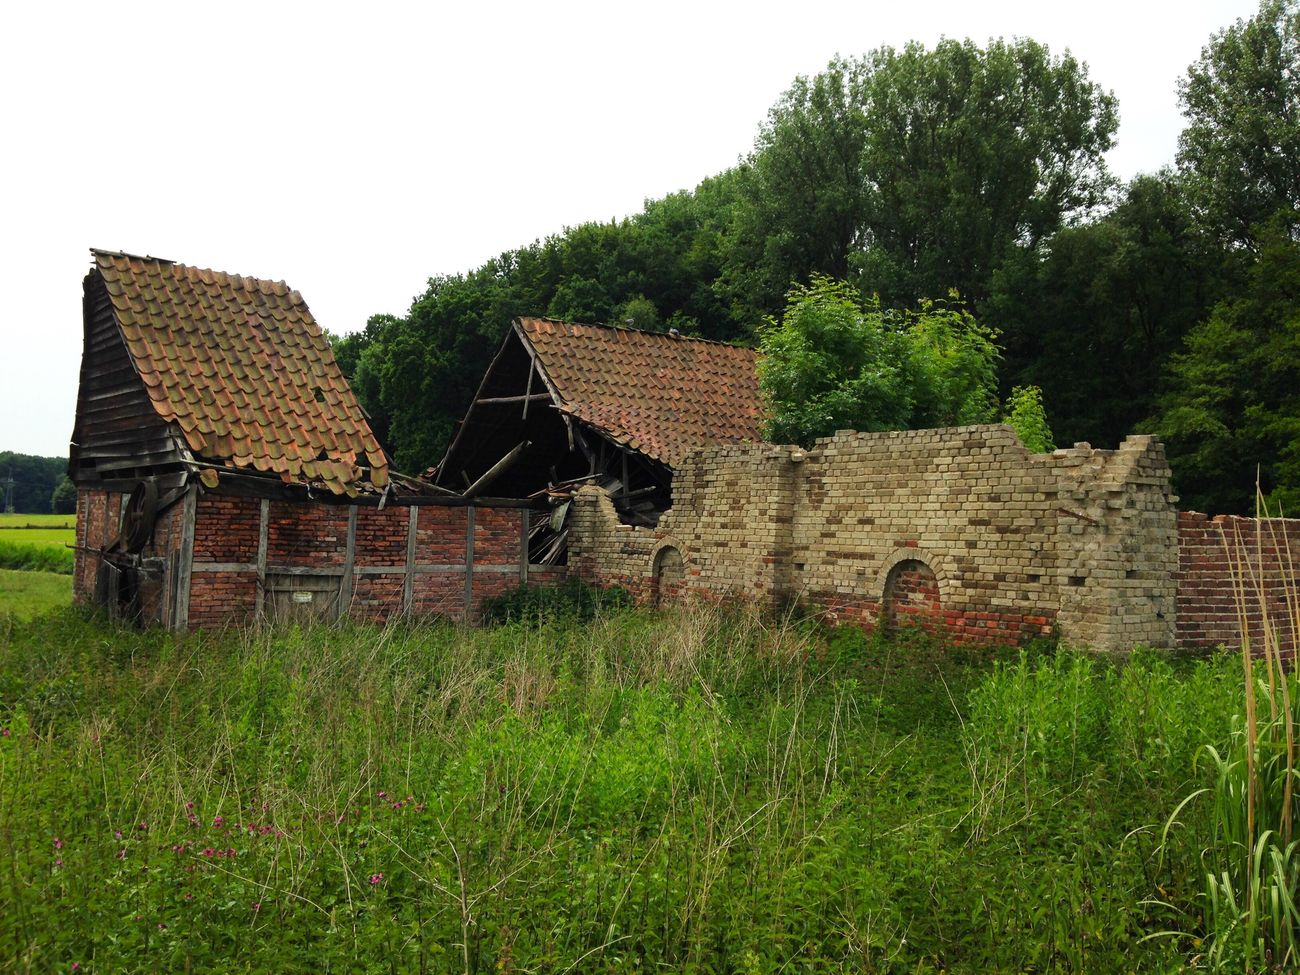 Built Structure Building Exterior House Architecture Tree No People Grass Roof Green Color Clear Sky Nature Sky Outdoors Day Barn Country House Derelict Bruchbude Haus Verfall Ruin Ruine Ruined Building Green Old Buildings